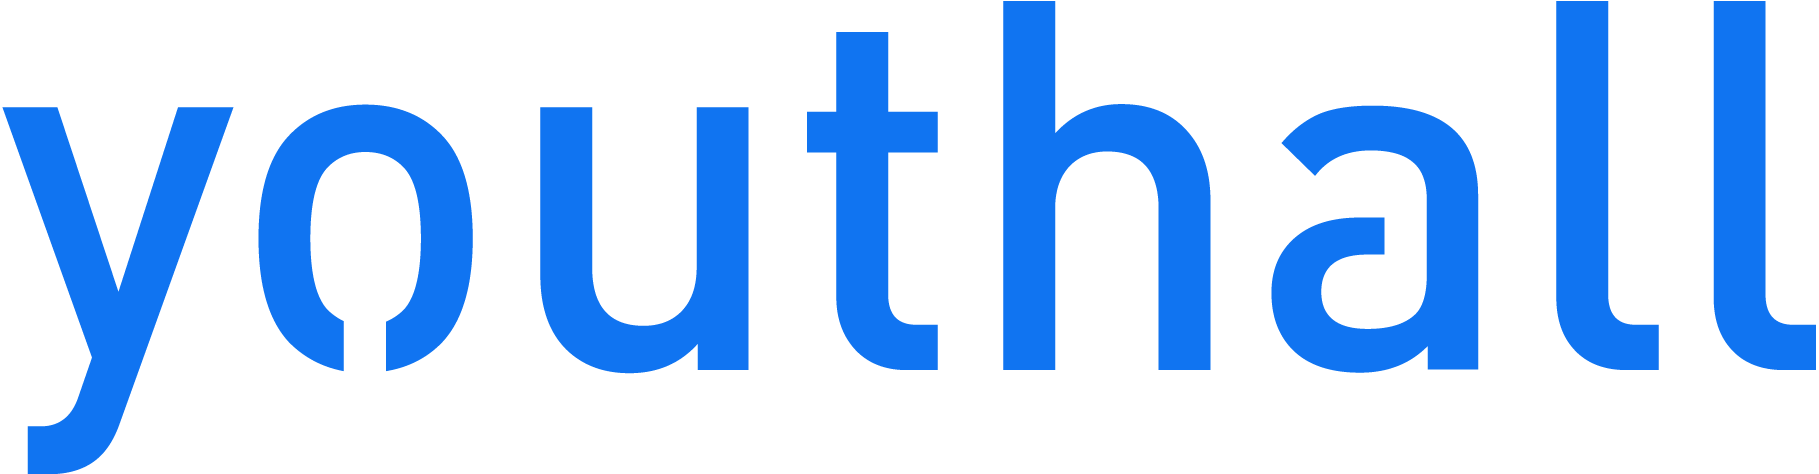 Youthall Logo Forget Password